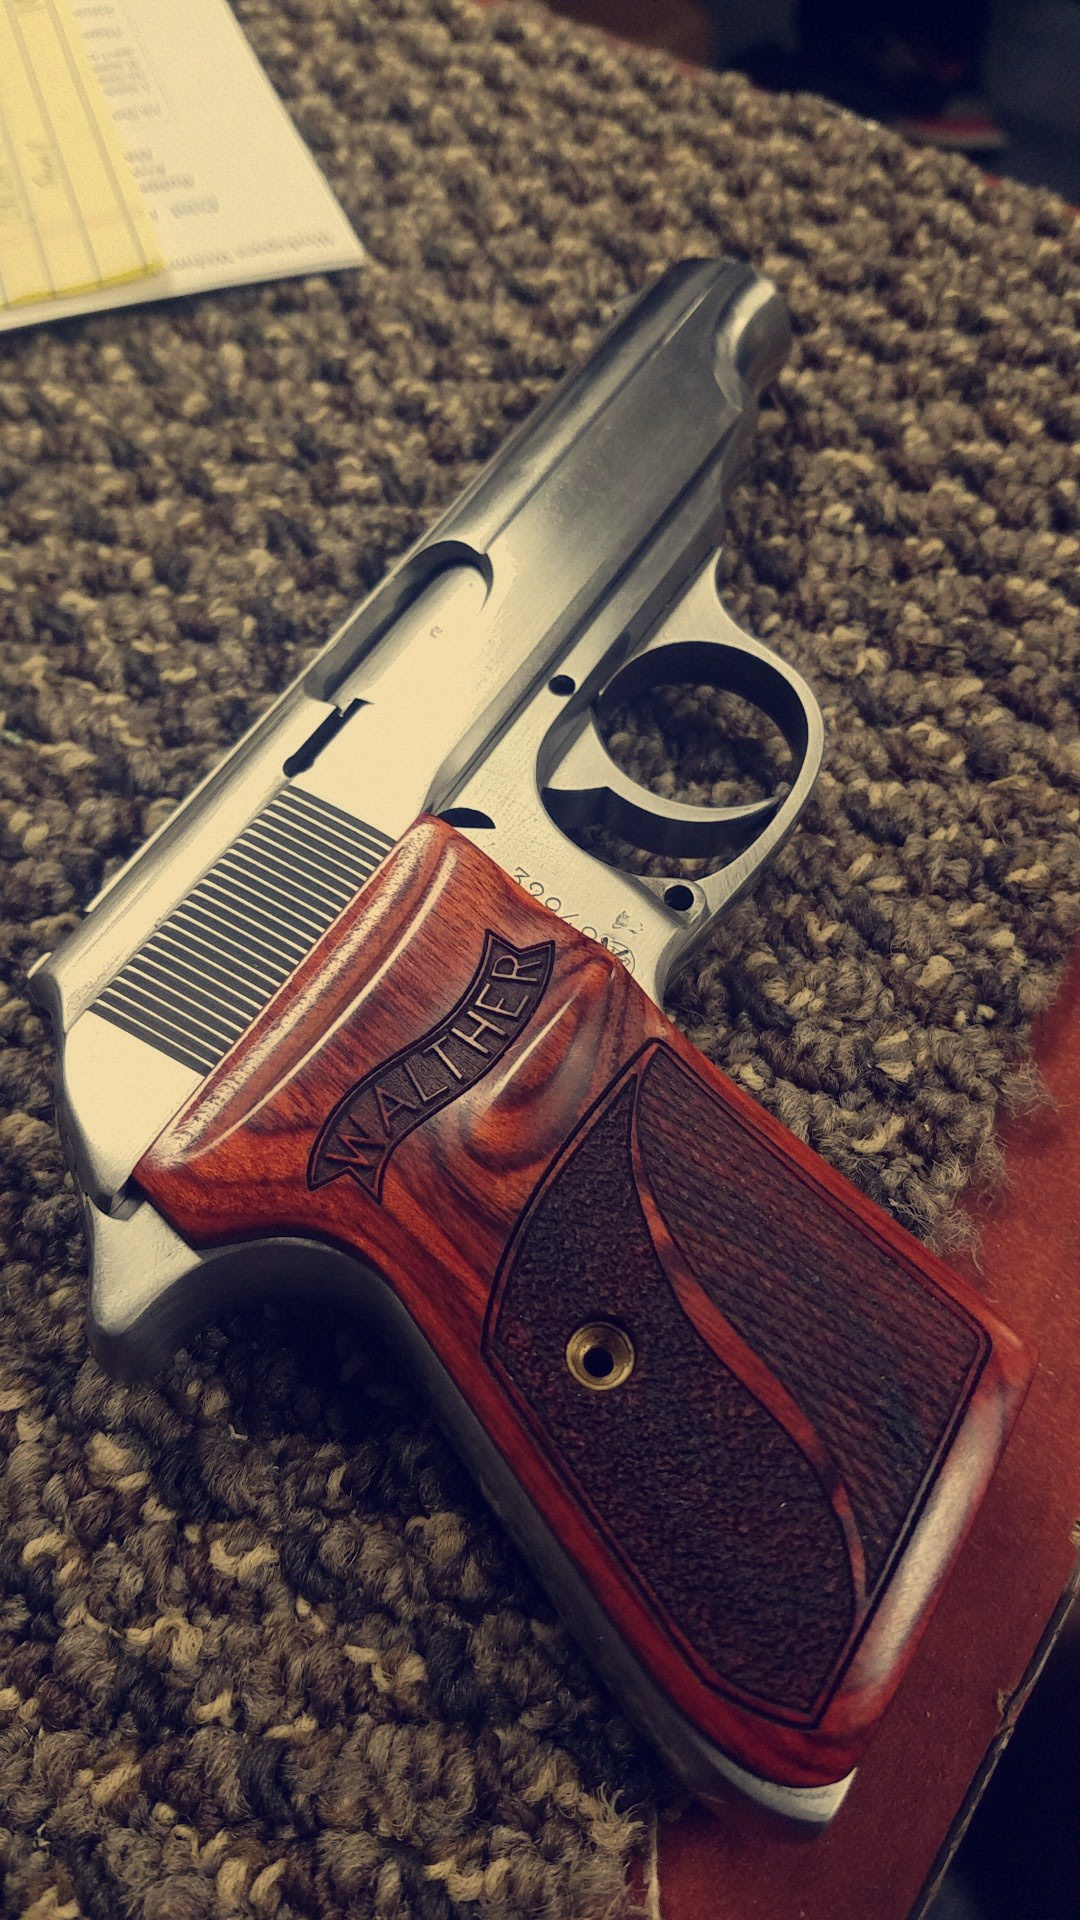 Walther pistol rescue after water damage